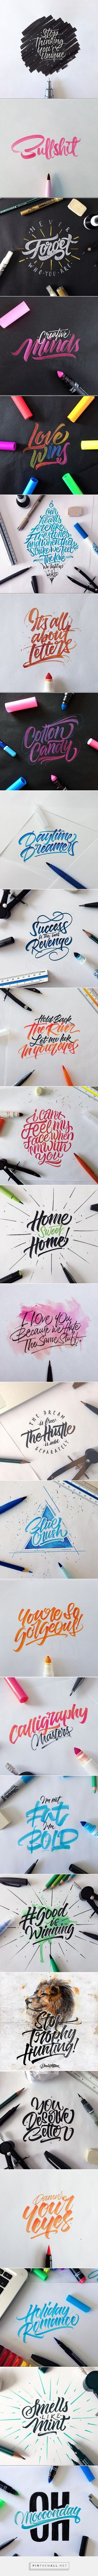 Crayola & Brushpen Lettering Set 3 by David Milan [Typography - Art] Typography Love, Typography Quotes, Typography Inspiration, Typography Letters, Graphic Design Typography, Lettering Design, Graphic Design Inspiration, Types Of Lettering, Brush Lettering